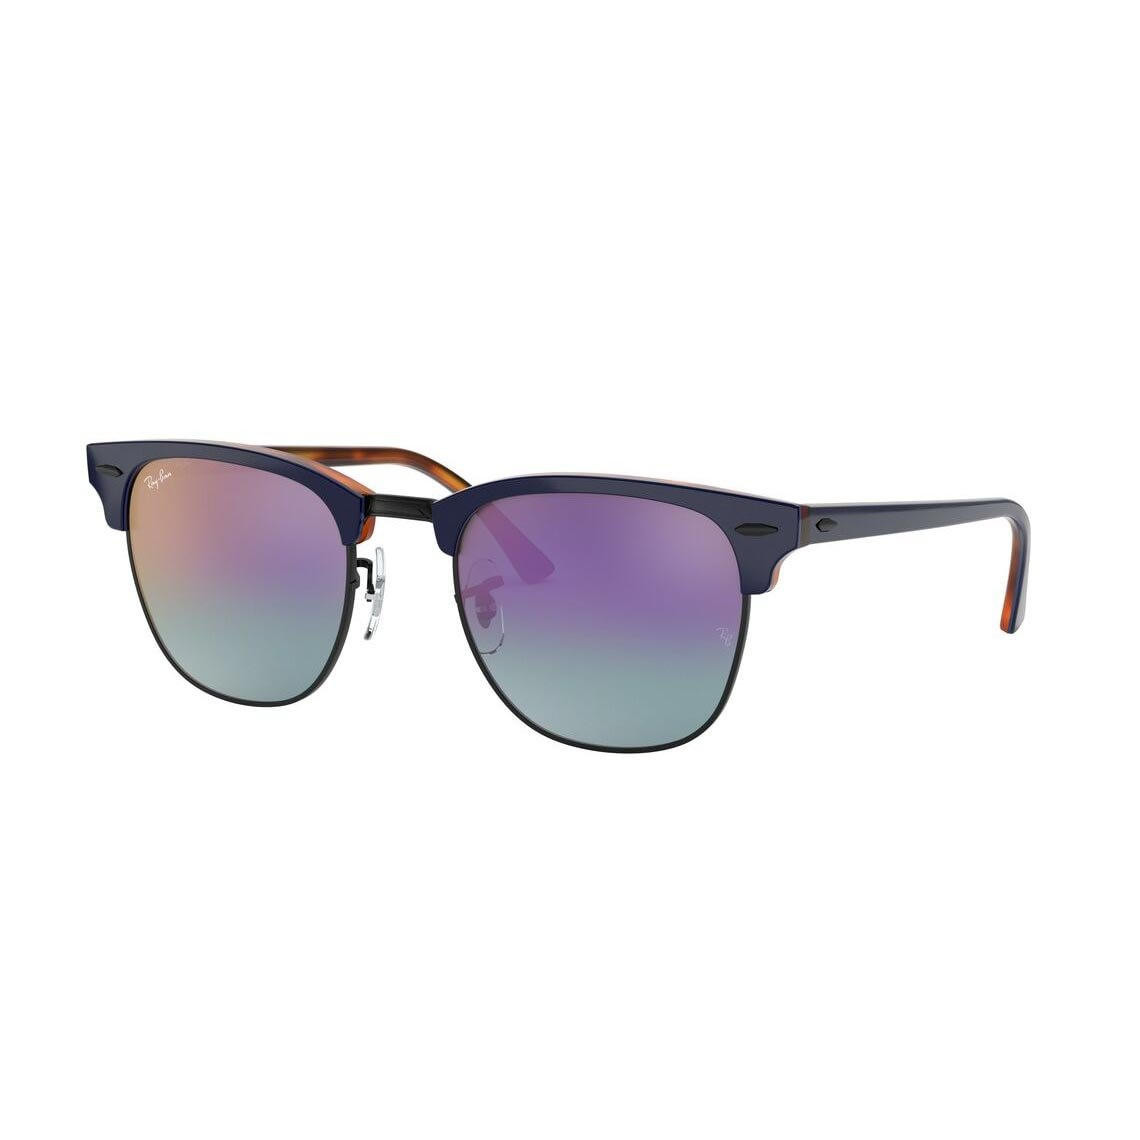 Ray-Ban Clubmaster RB3016 1278T6 5121